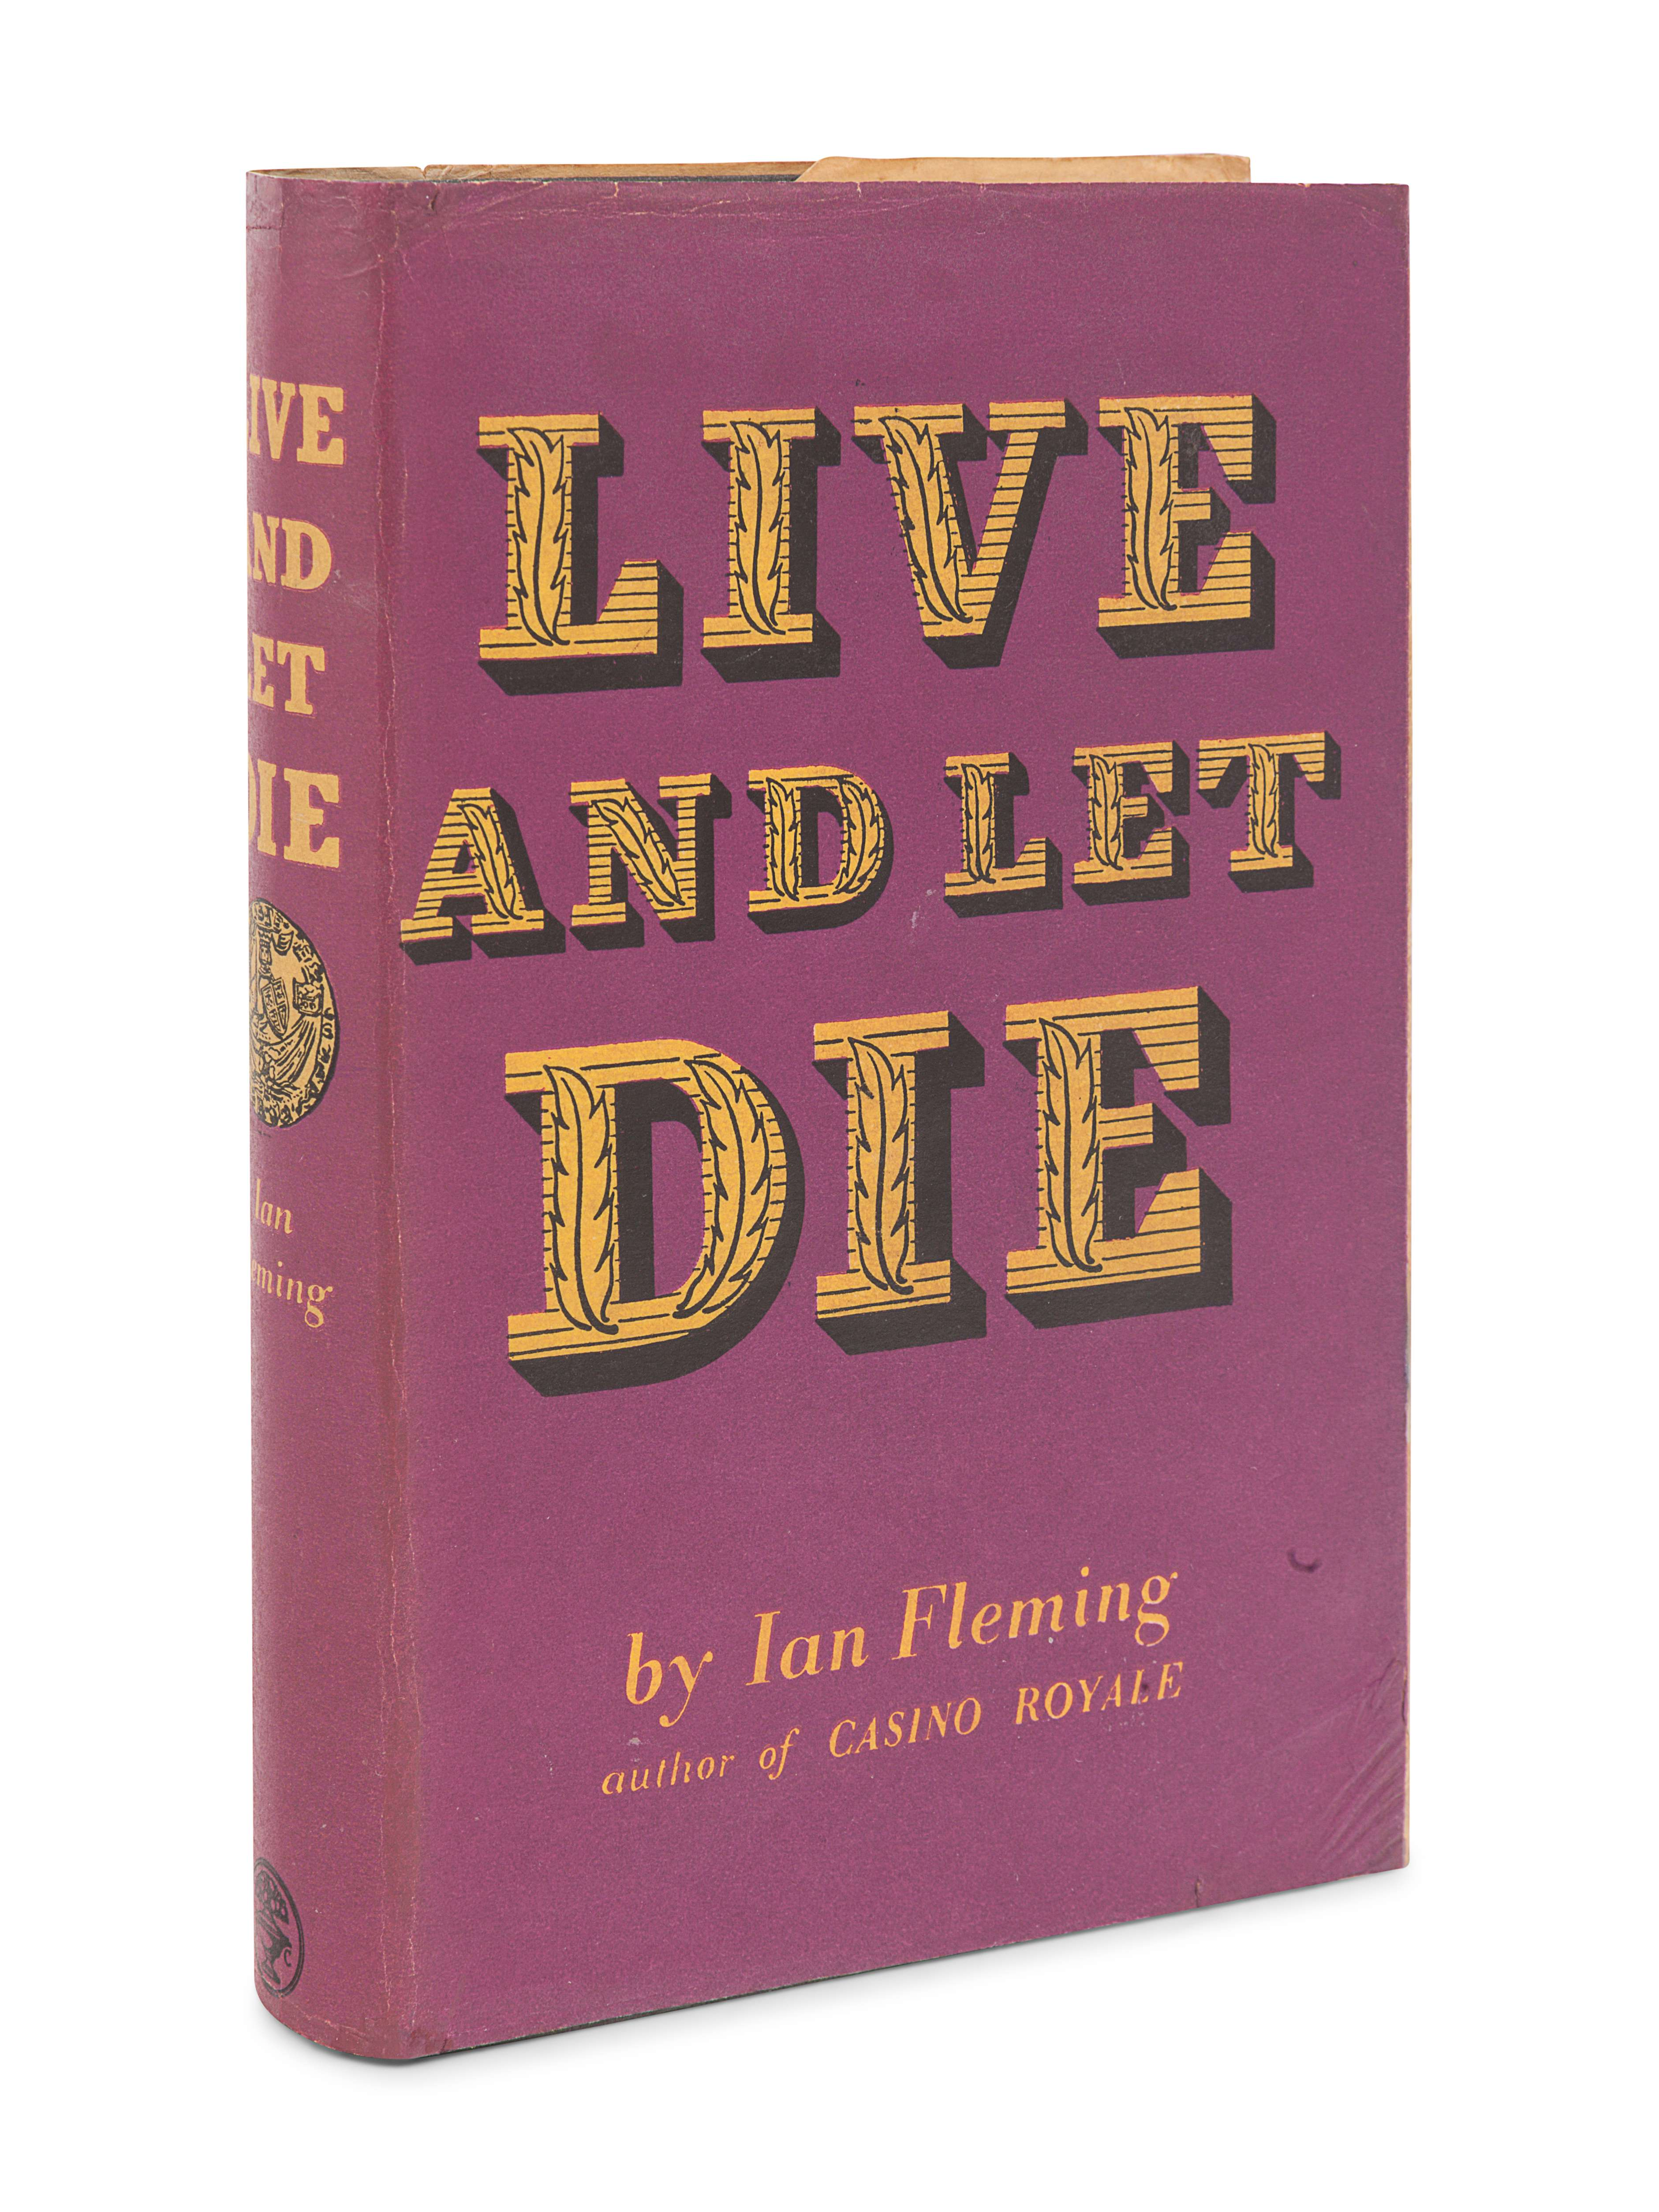 FLEMING, Ian (1908-1964). Live and Let Die. London: Jonathan Cape, 1954. - Image 2 of 3